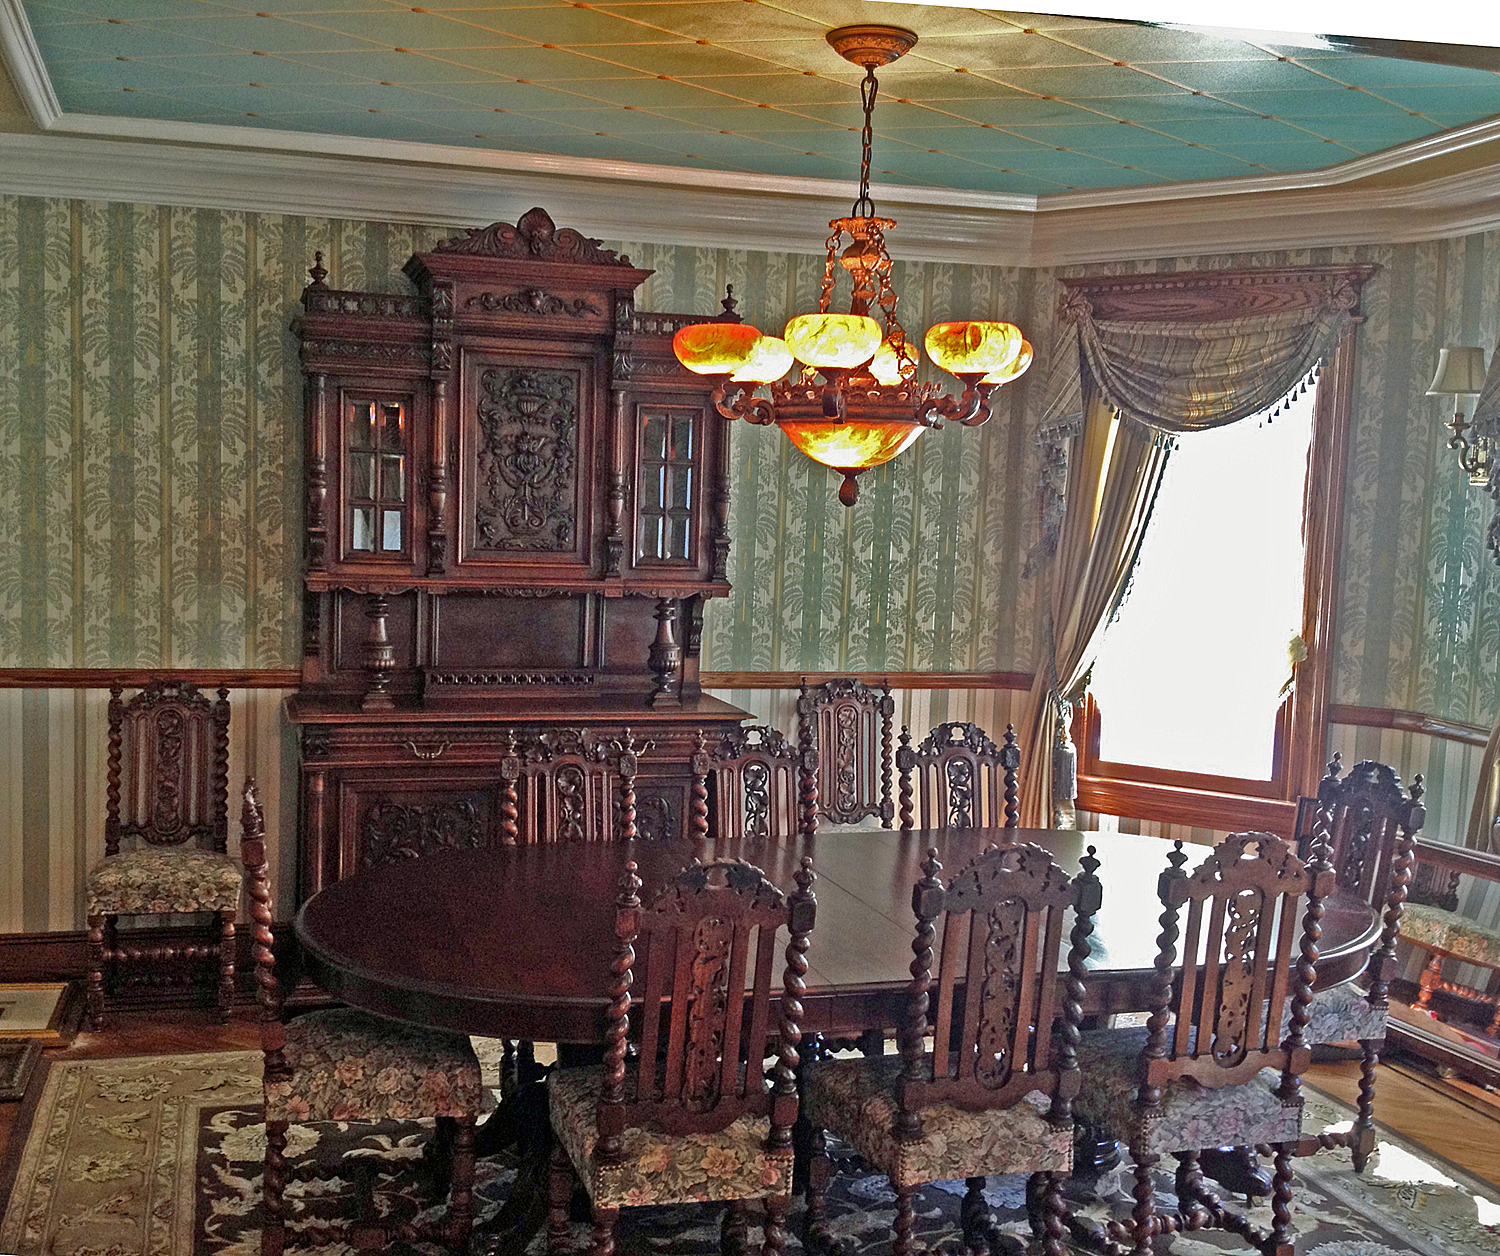 Antique dining room furniture in our client's Victorian house